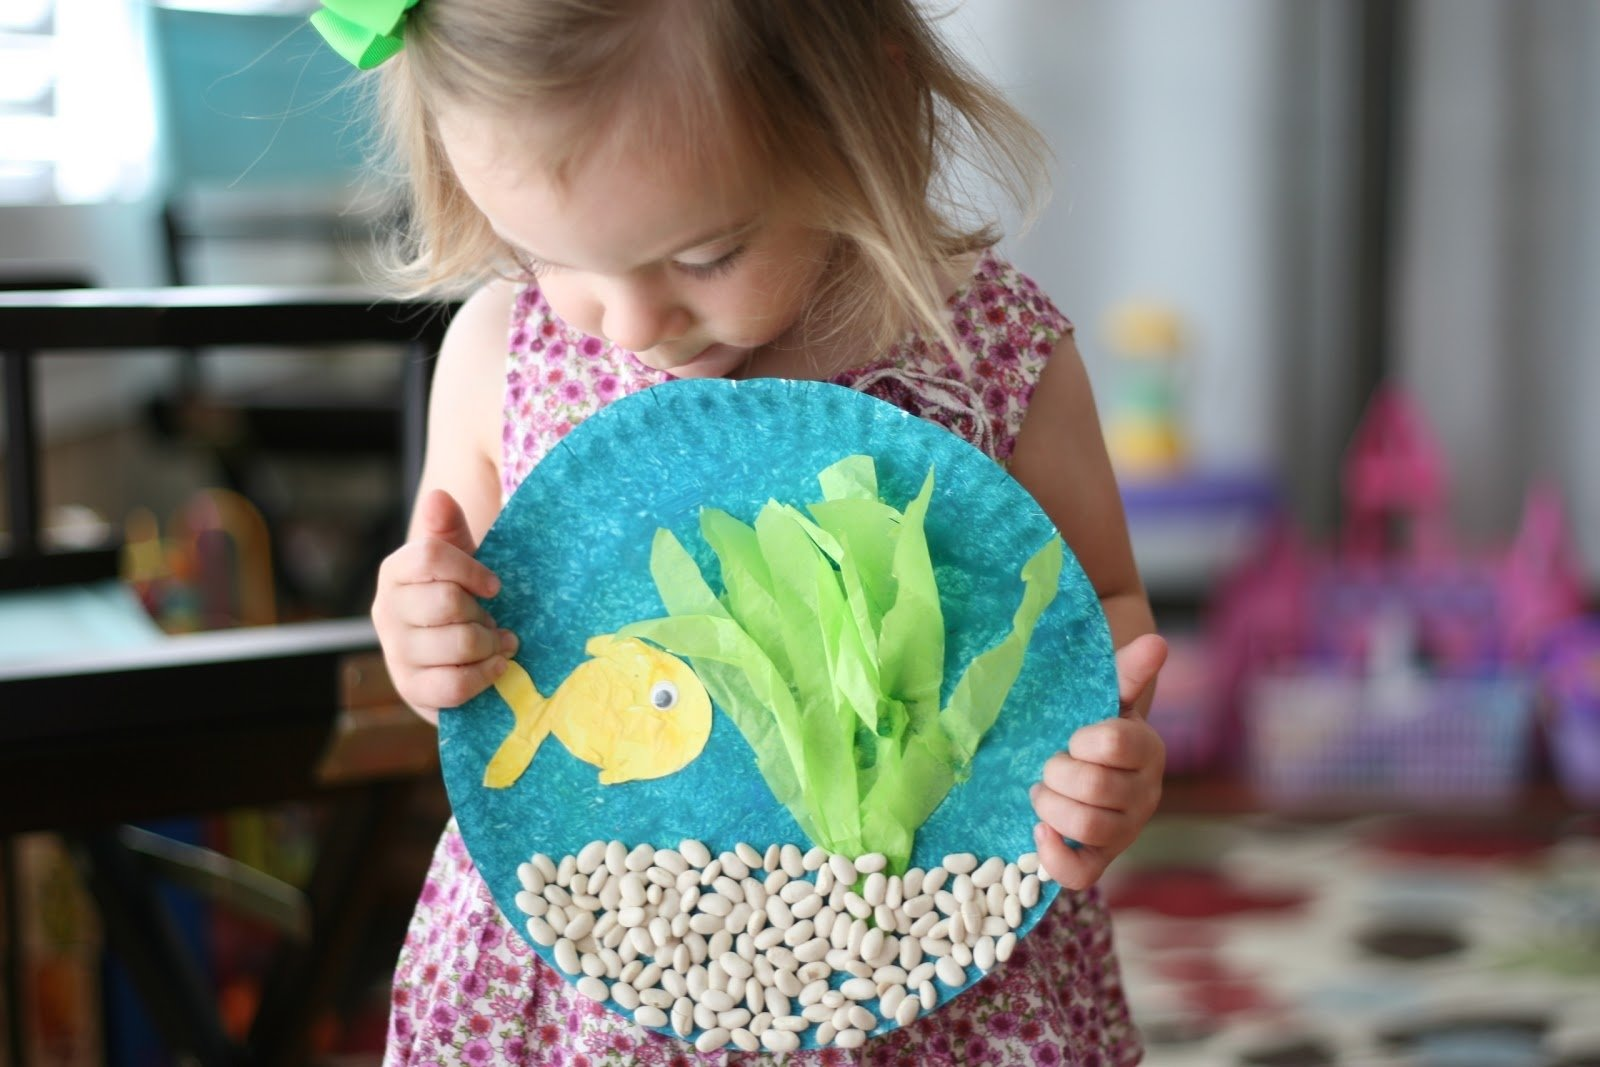 10 Ideal Craft Ideas For 2 Year Olds craft ideas for 6 year olds easy crafts for crafts for 2020